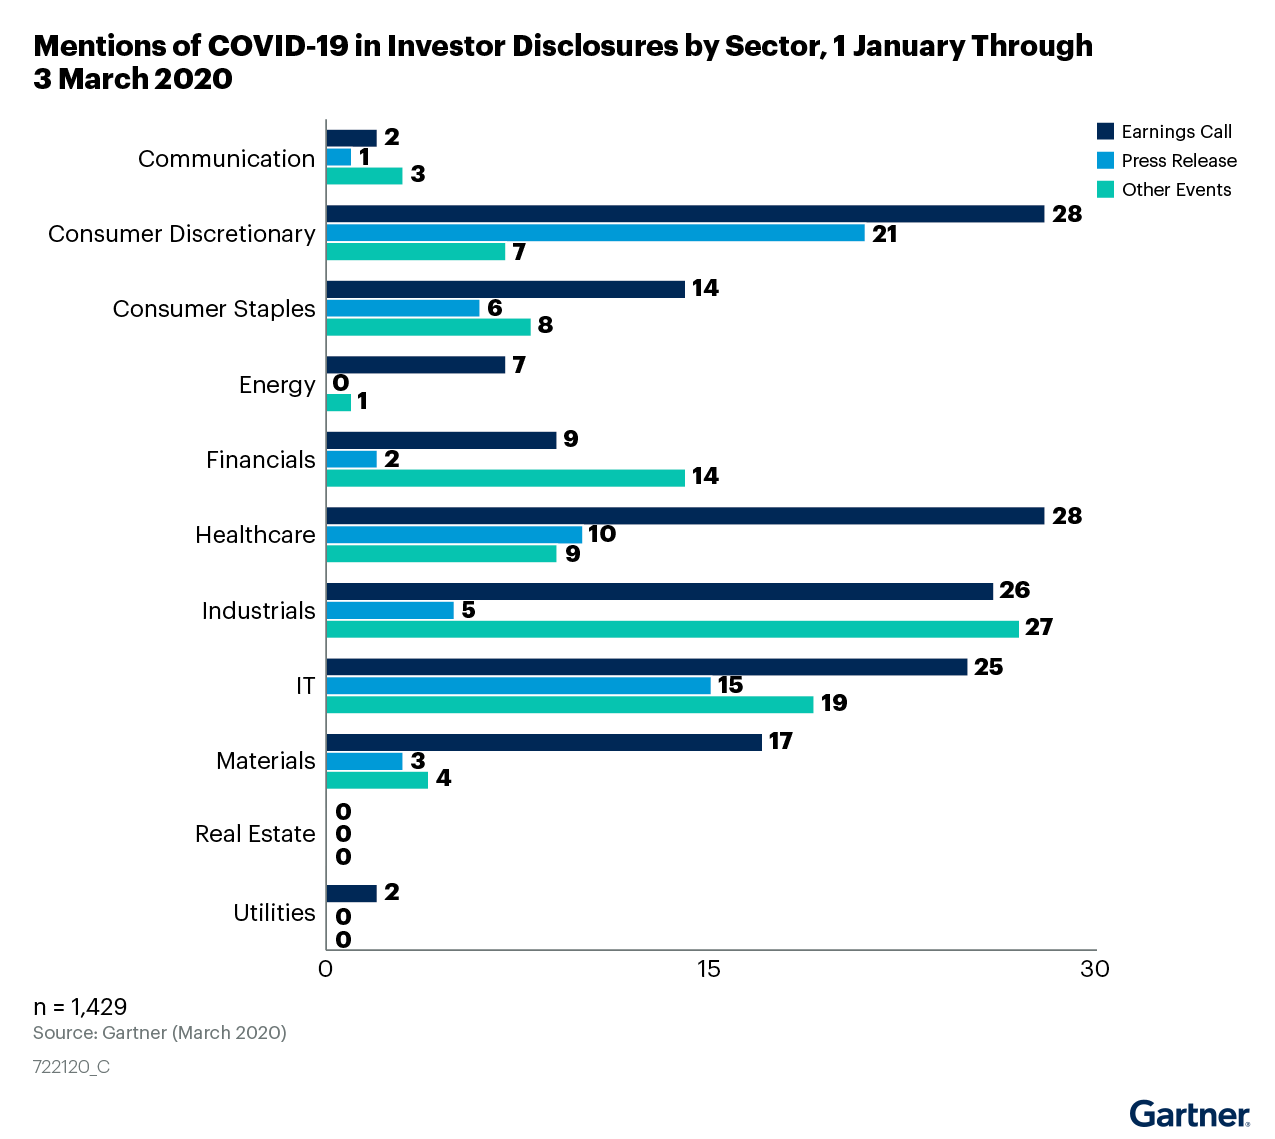 Figure 1: Mentions of COVID-19 in Investor Disclosures by Sector, 1 January Through 3 March 2020